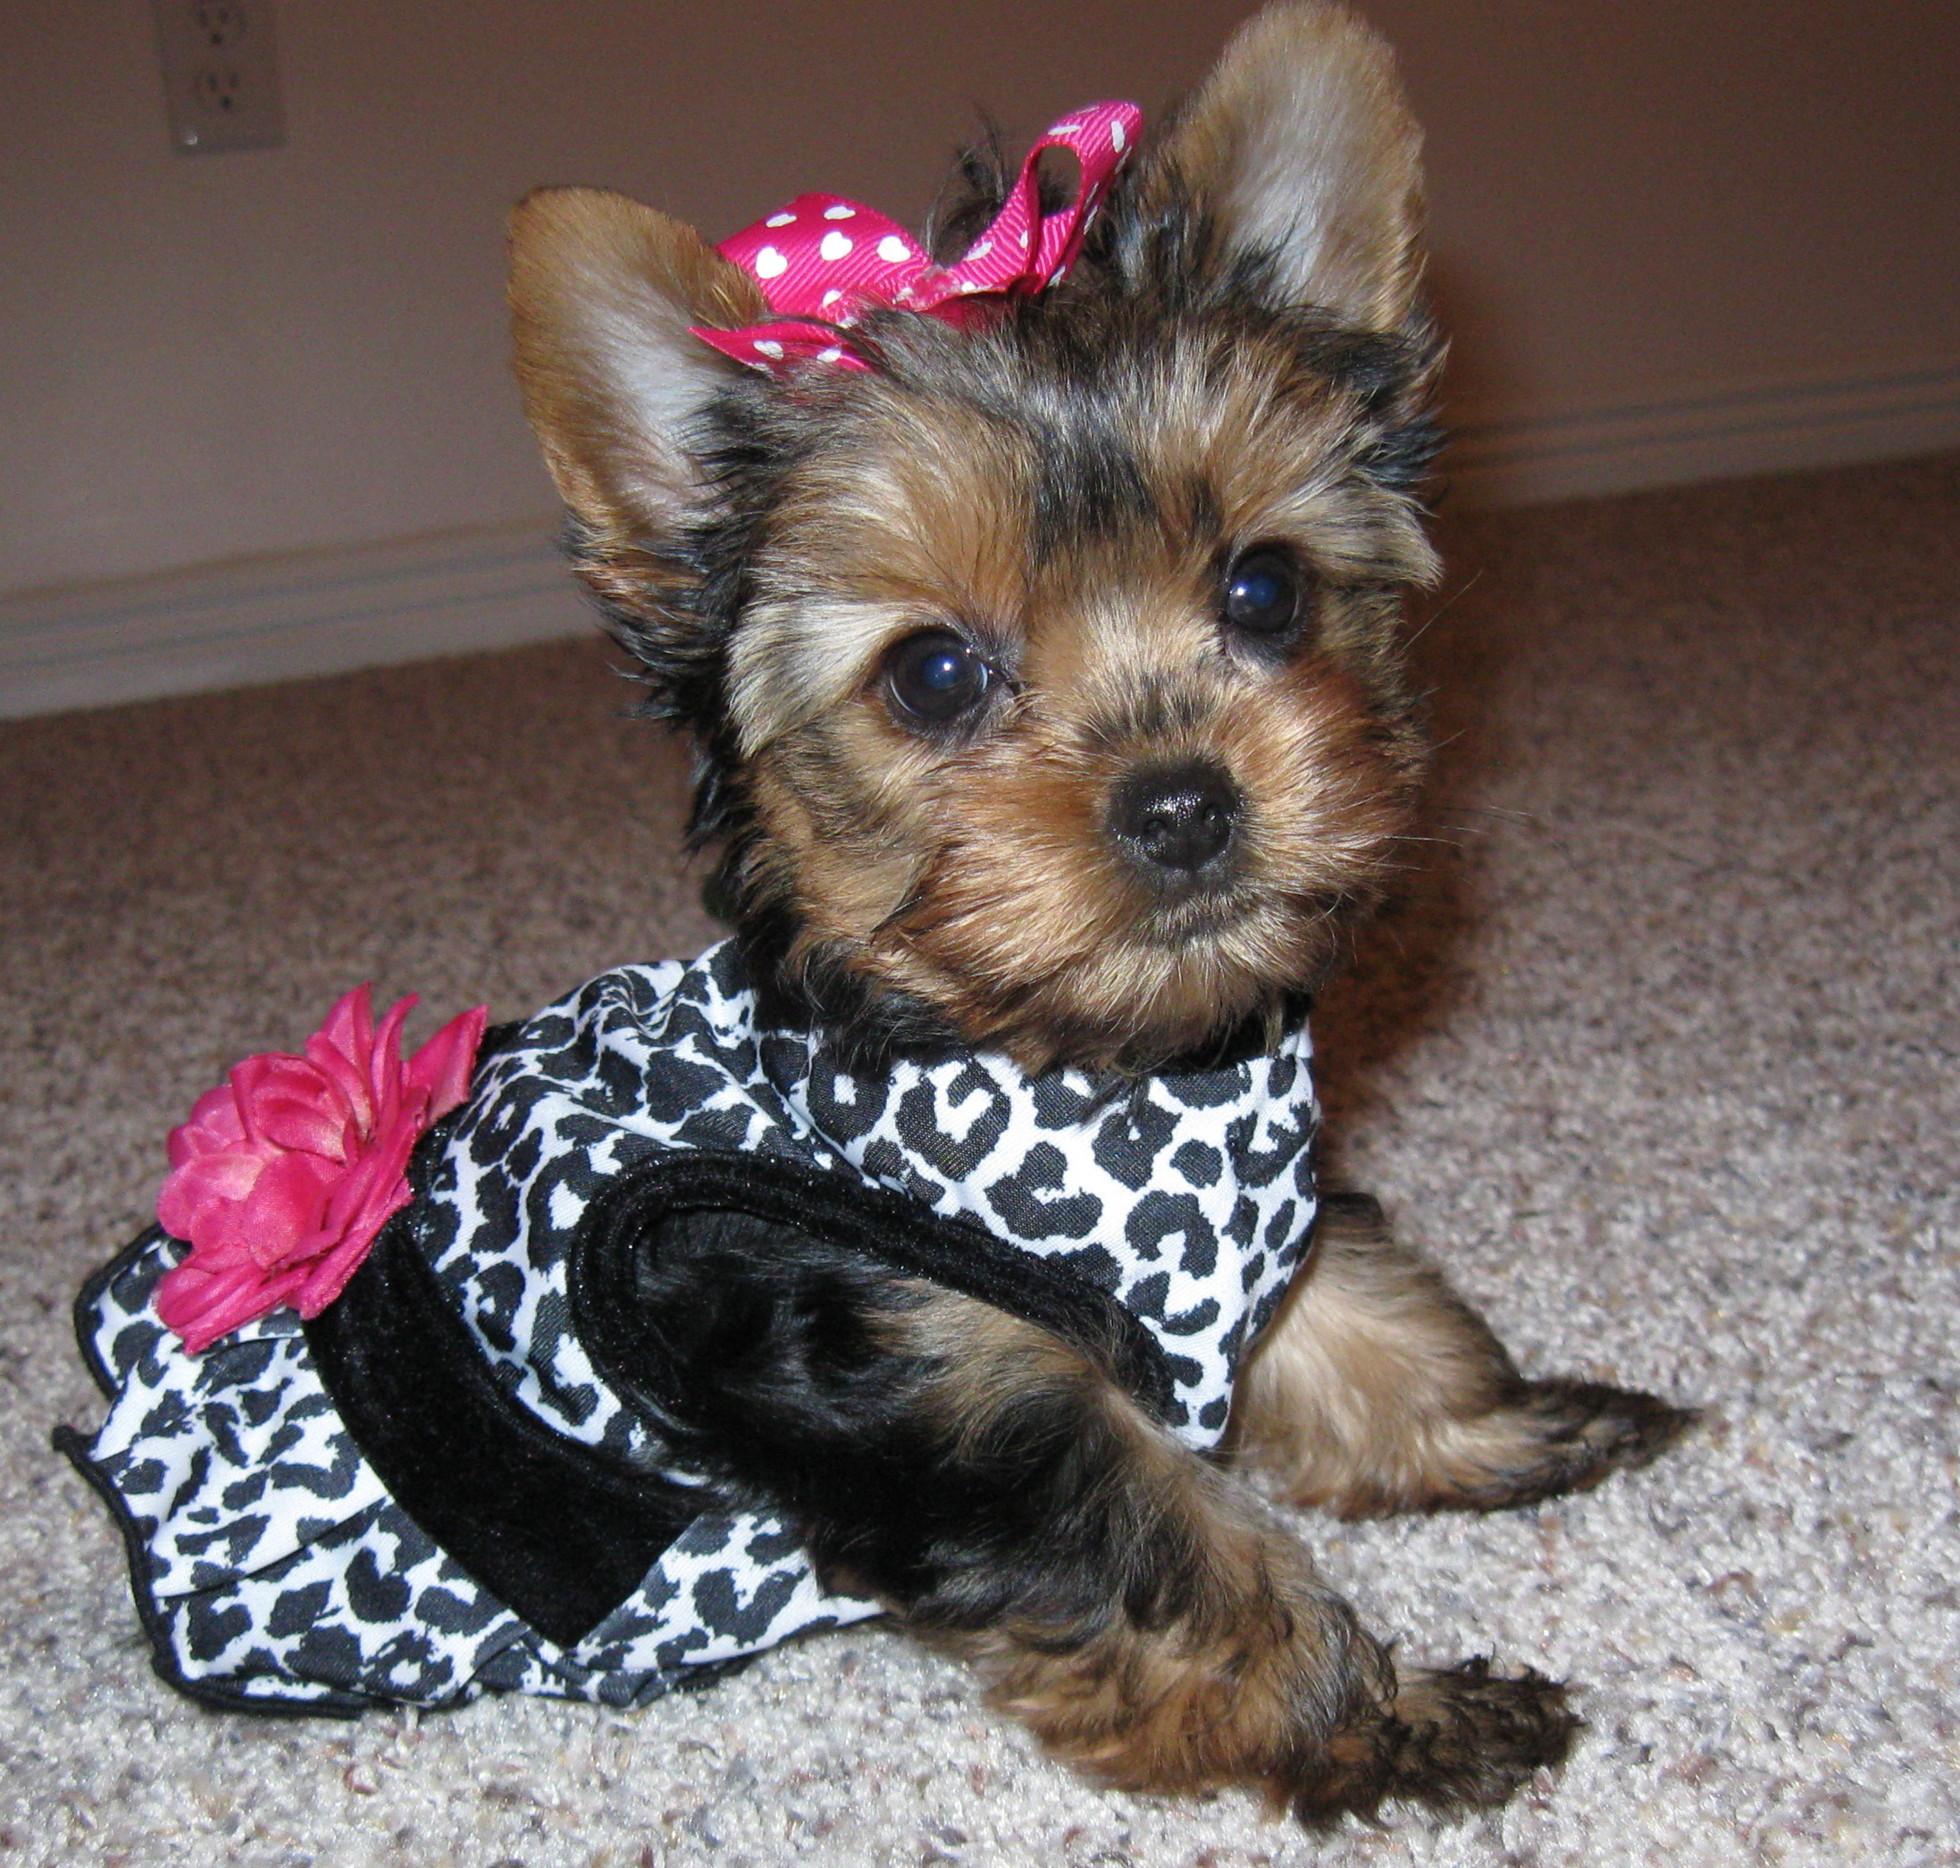 teacup yorkie clothes teacup yorkie clothes dress the dog clothes for your pets 313